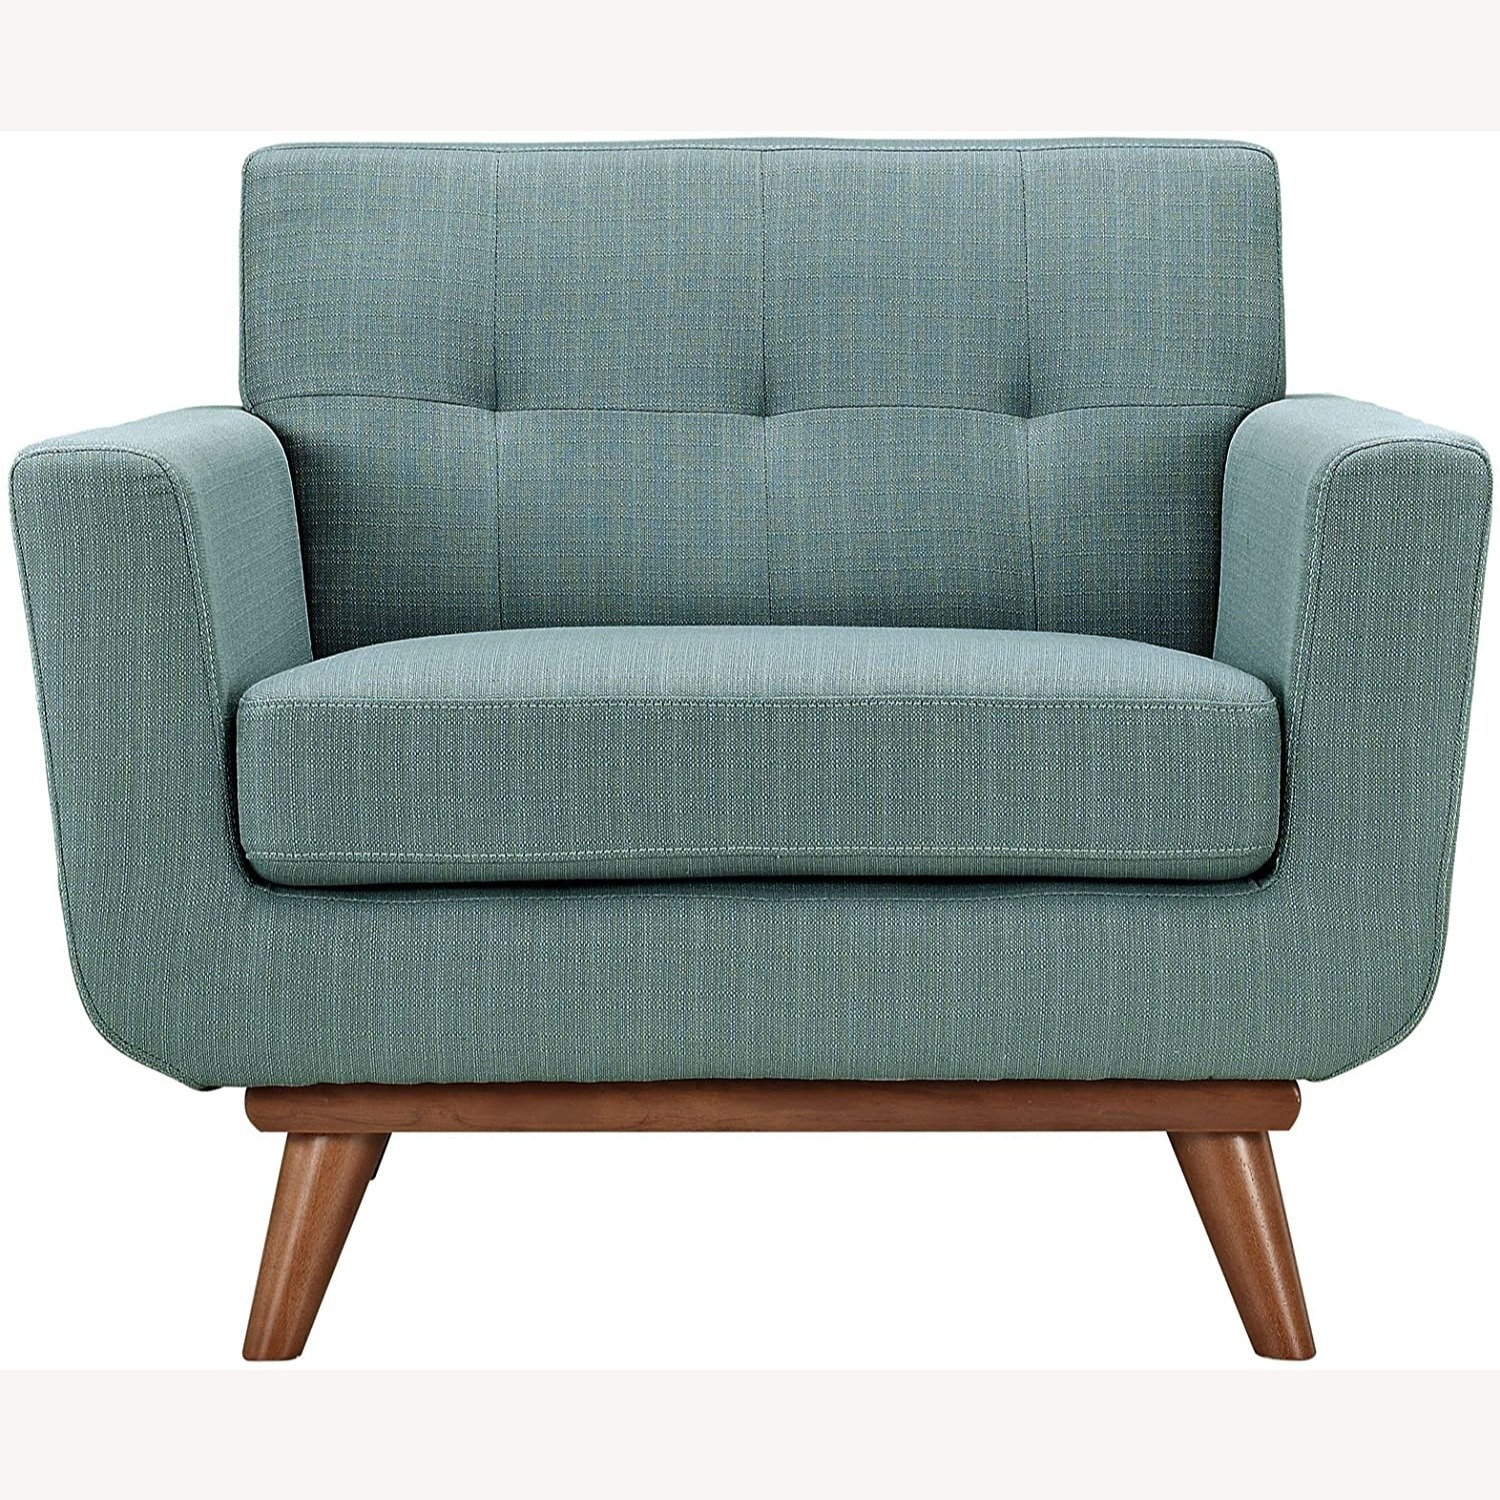 Armchair In Laguna Fabric W/ 3 Tufted Buttons - image-1